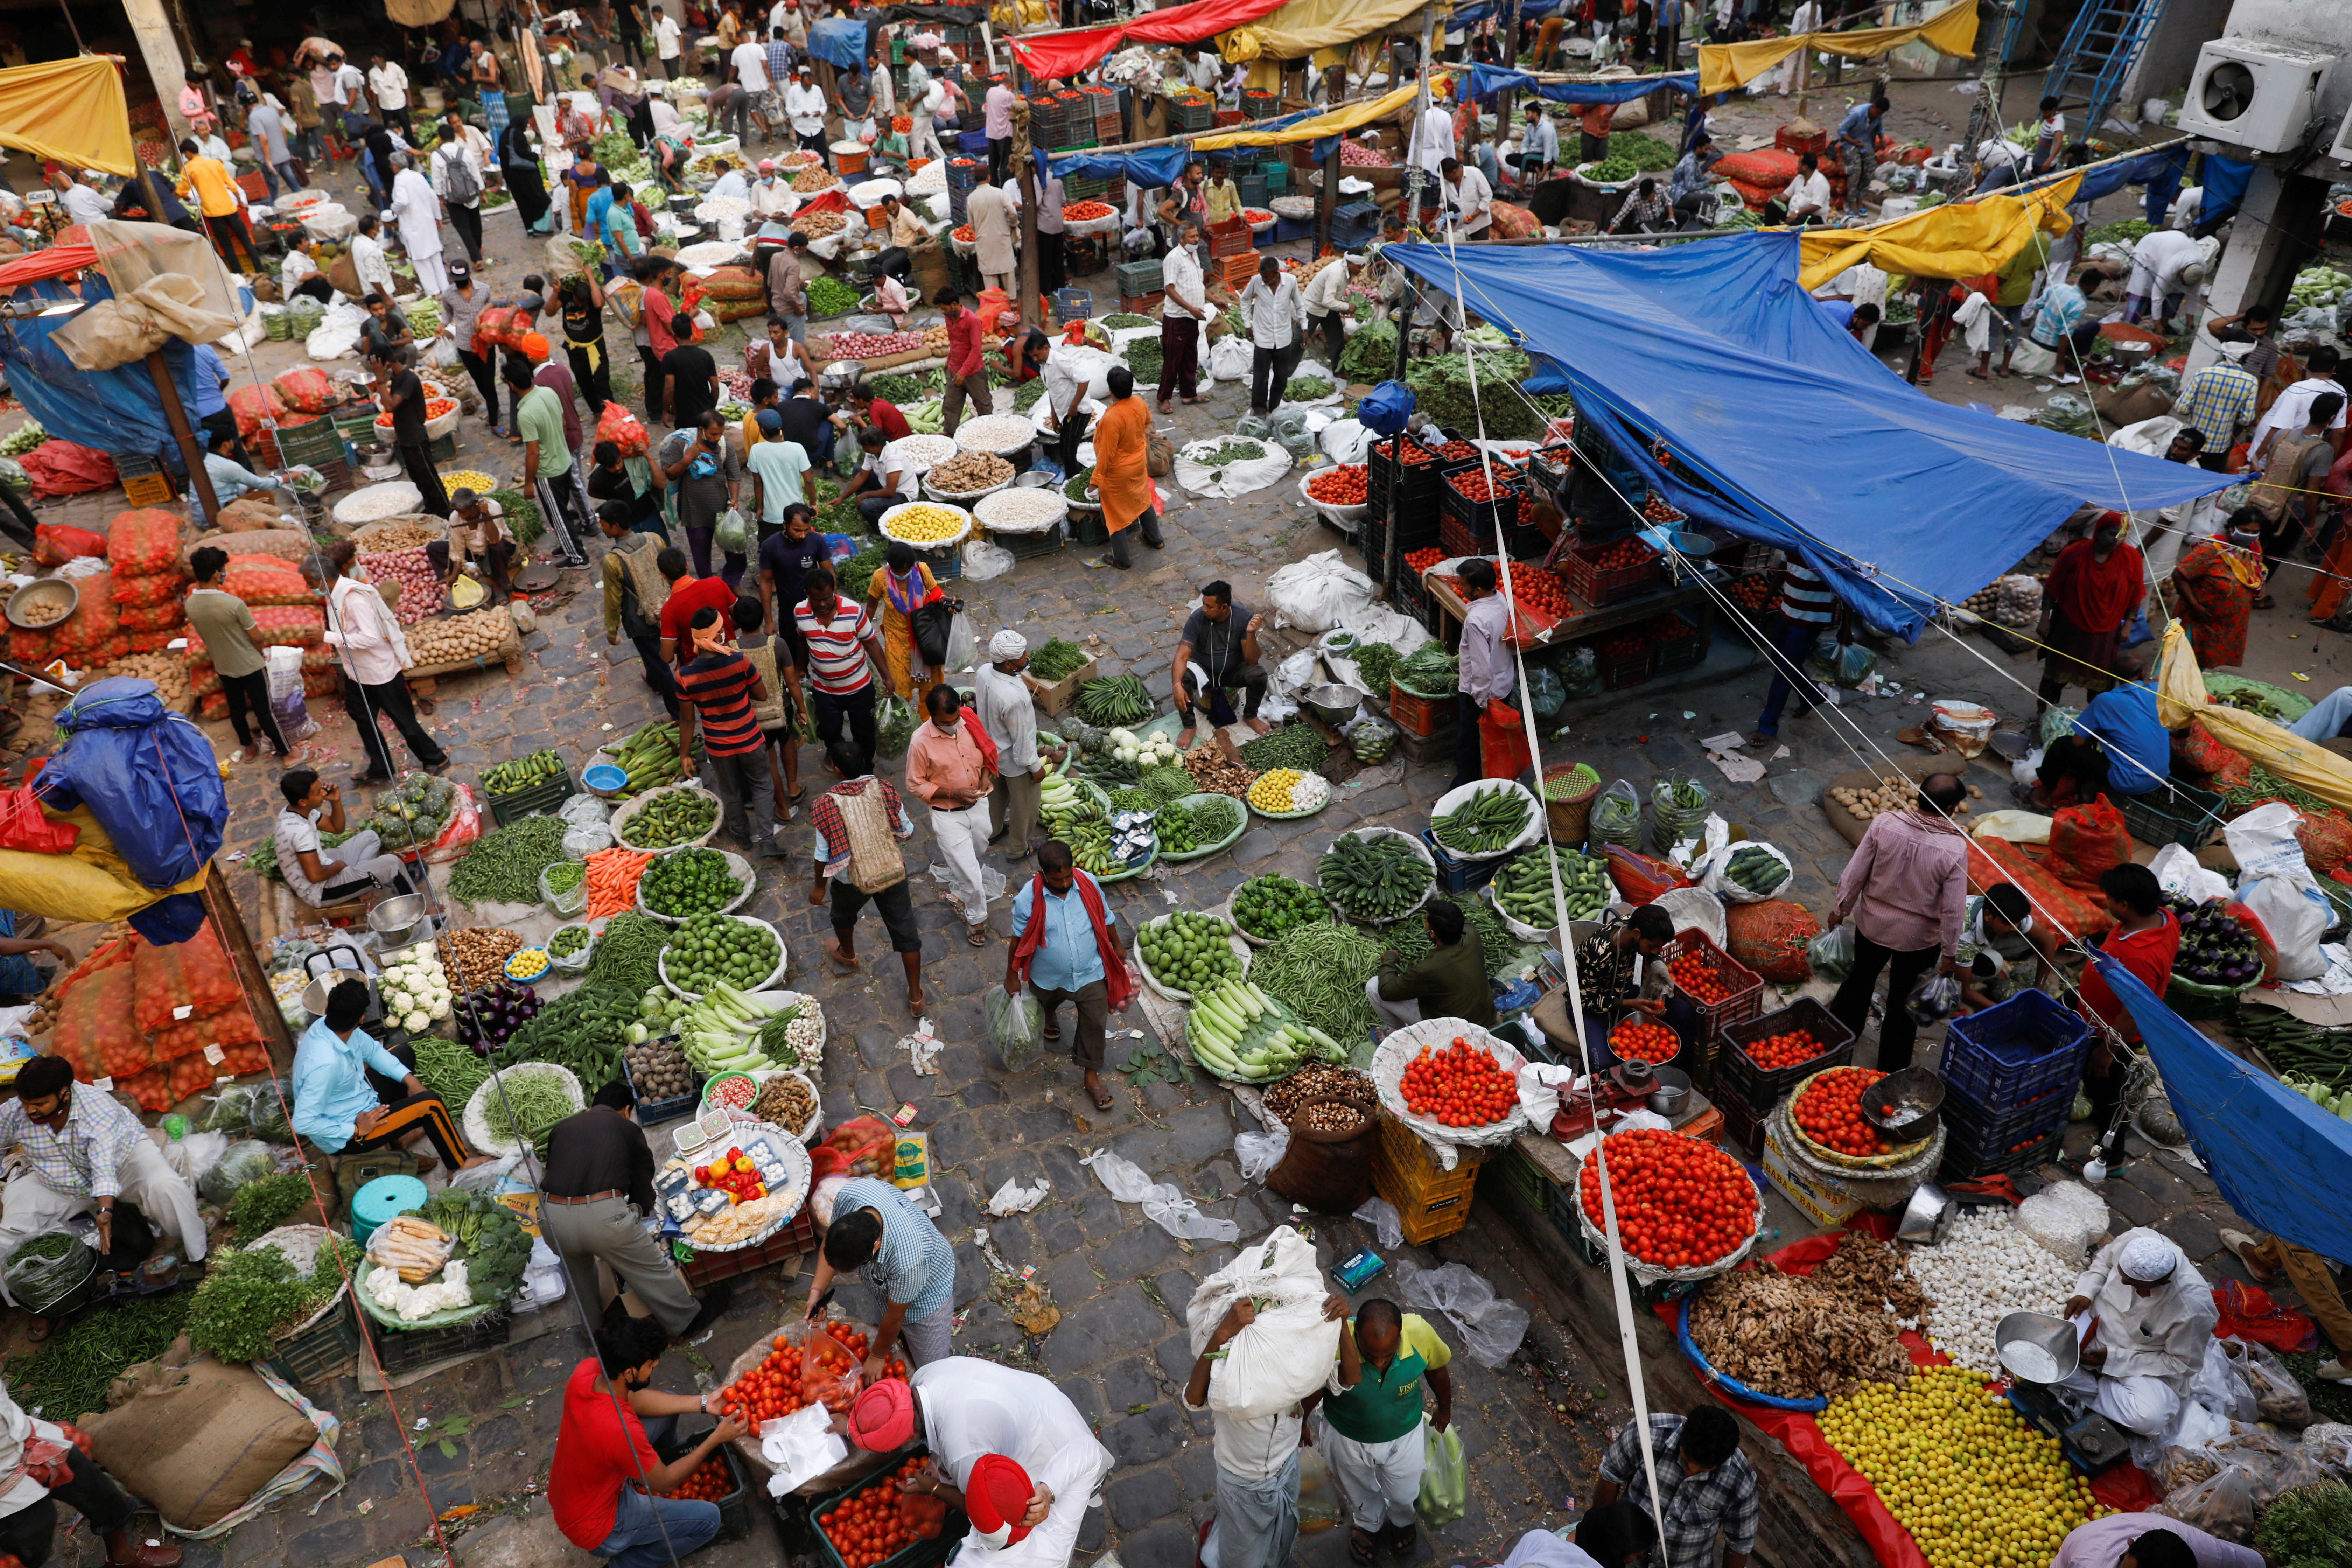 People shop at a crowded wholesale vegetable market after authorities eased coronavirus restrictions, following a drop in COVID-19 cases, in the old quarters of Delhi, India, June 23, 2021. REUTERS/Adnan Abidi/File Photo